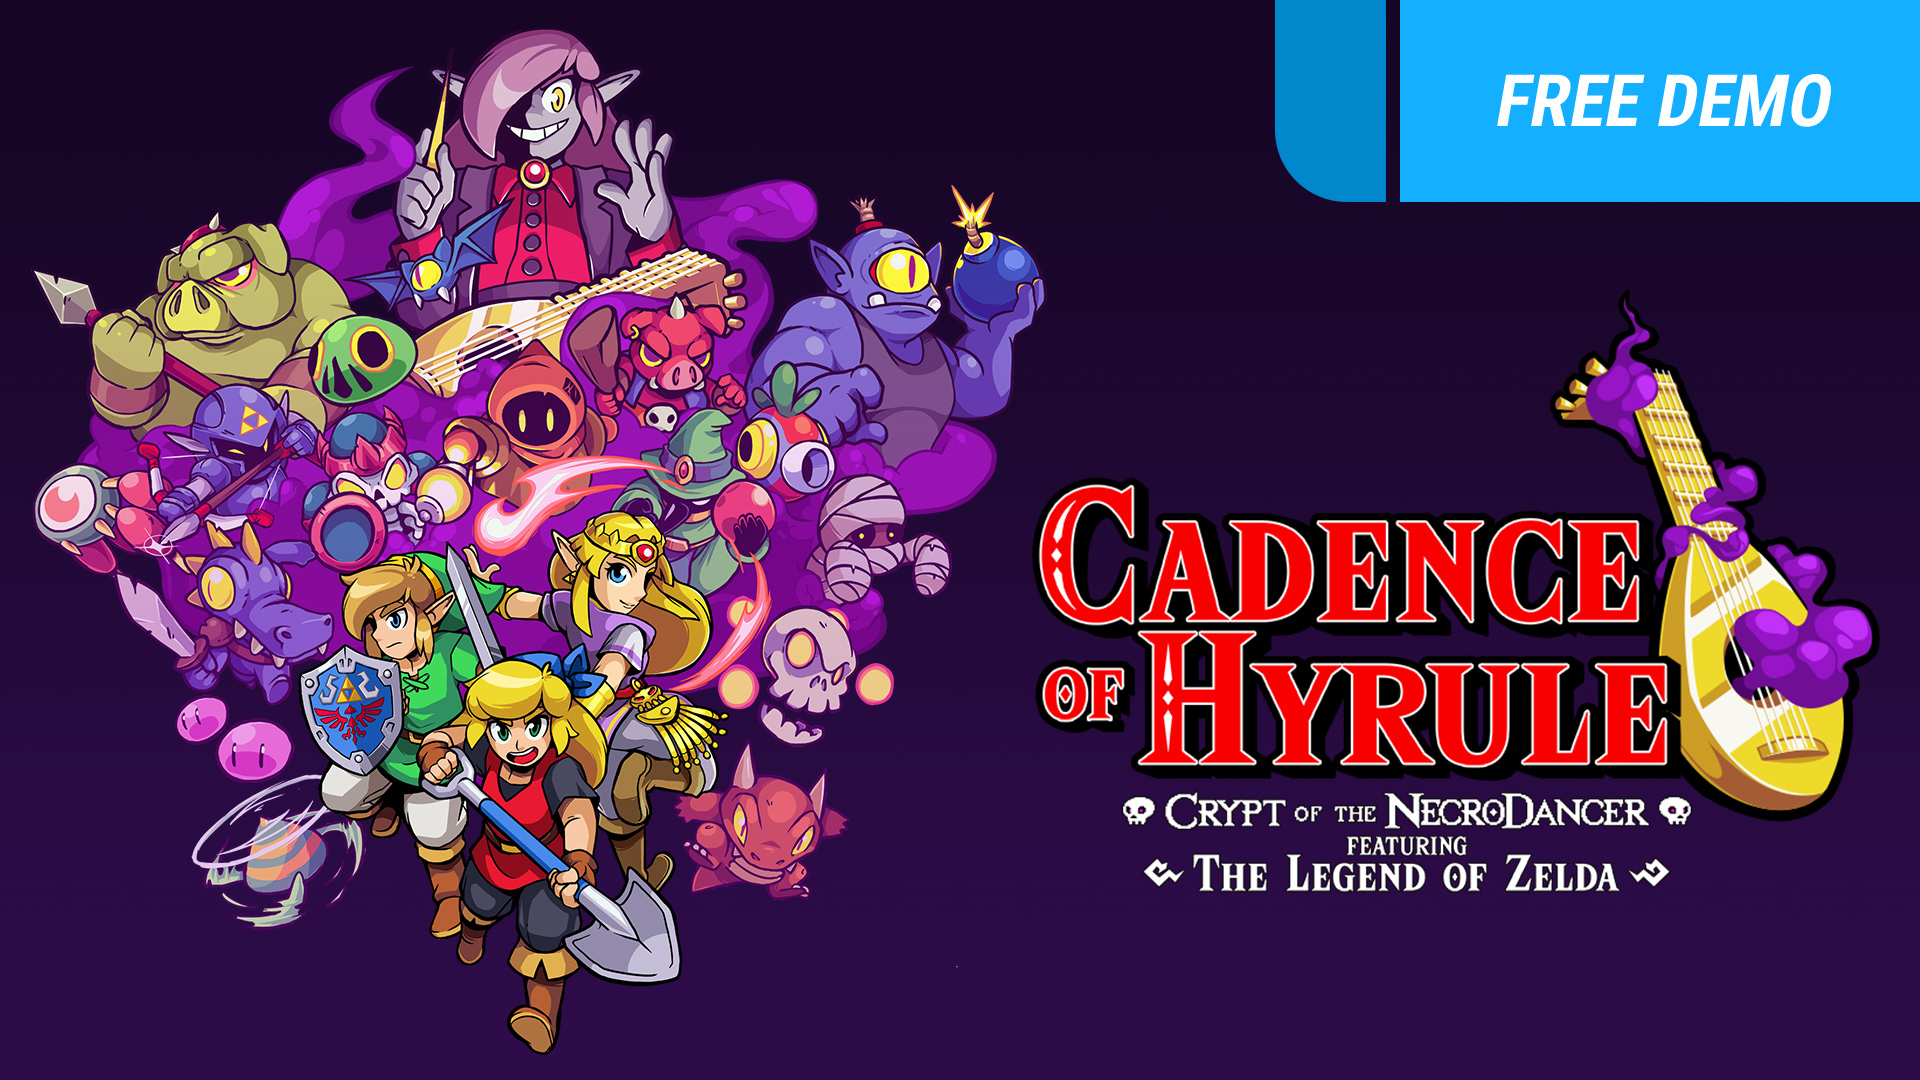 Cadence Of Hyrule Crypt Of The Necrodancer Featuring The Legend